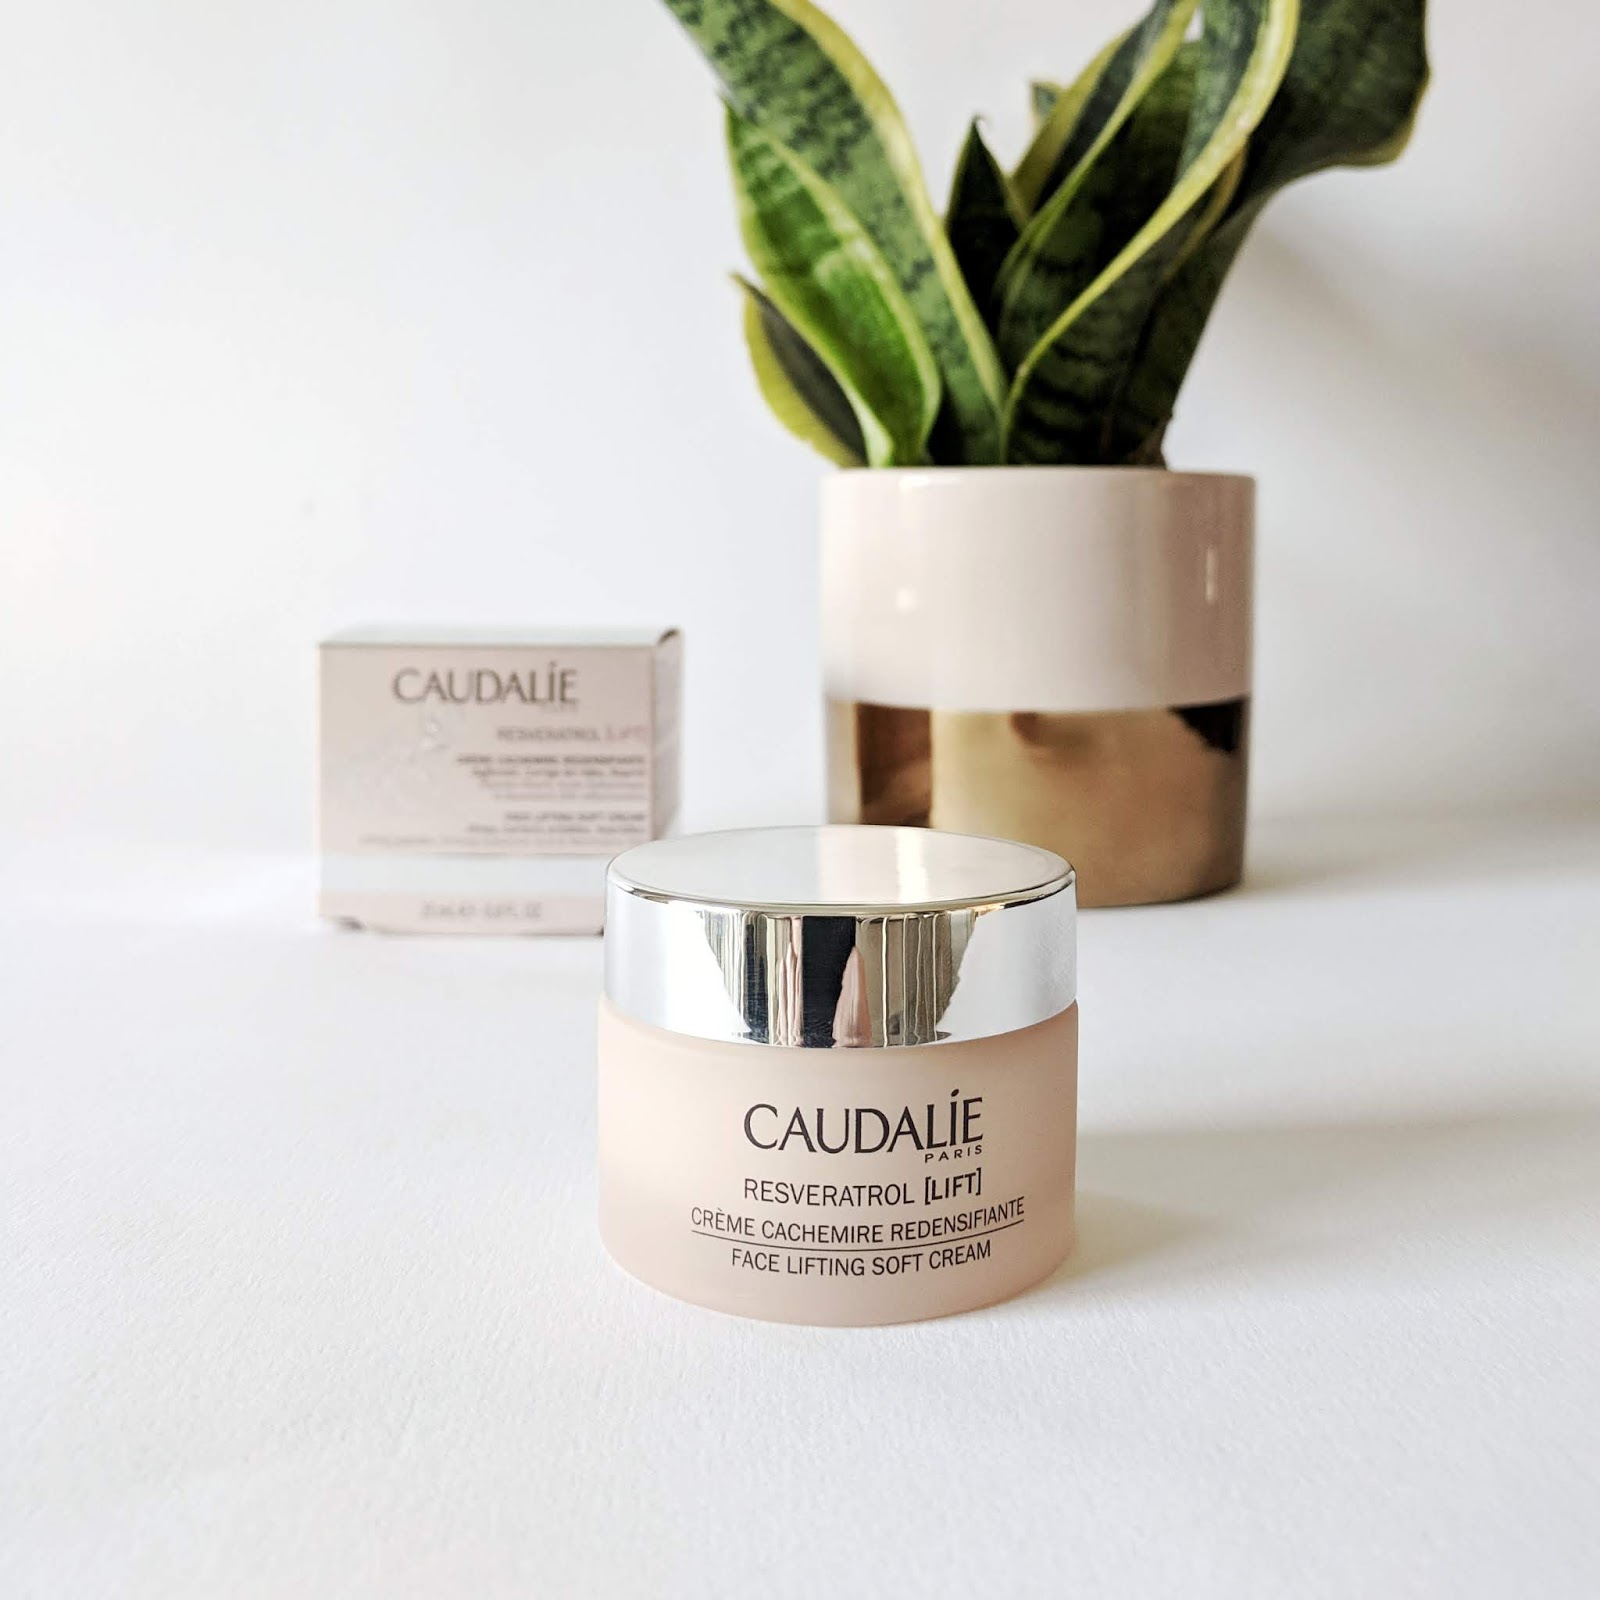 Image of a jar of Caudalie Resveratrol Lifting Cream